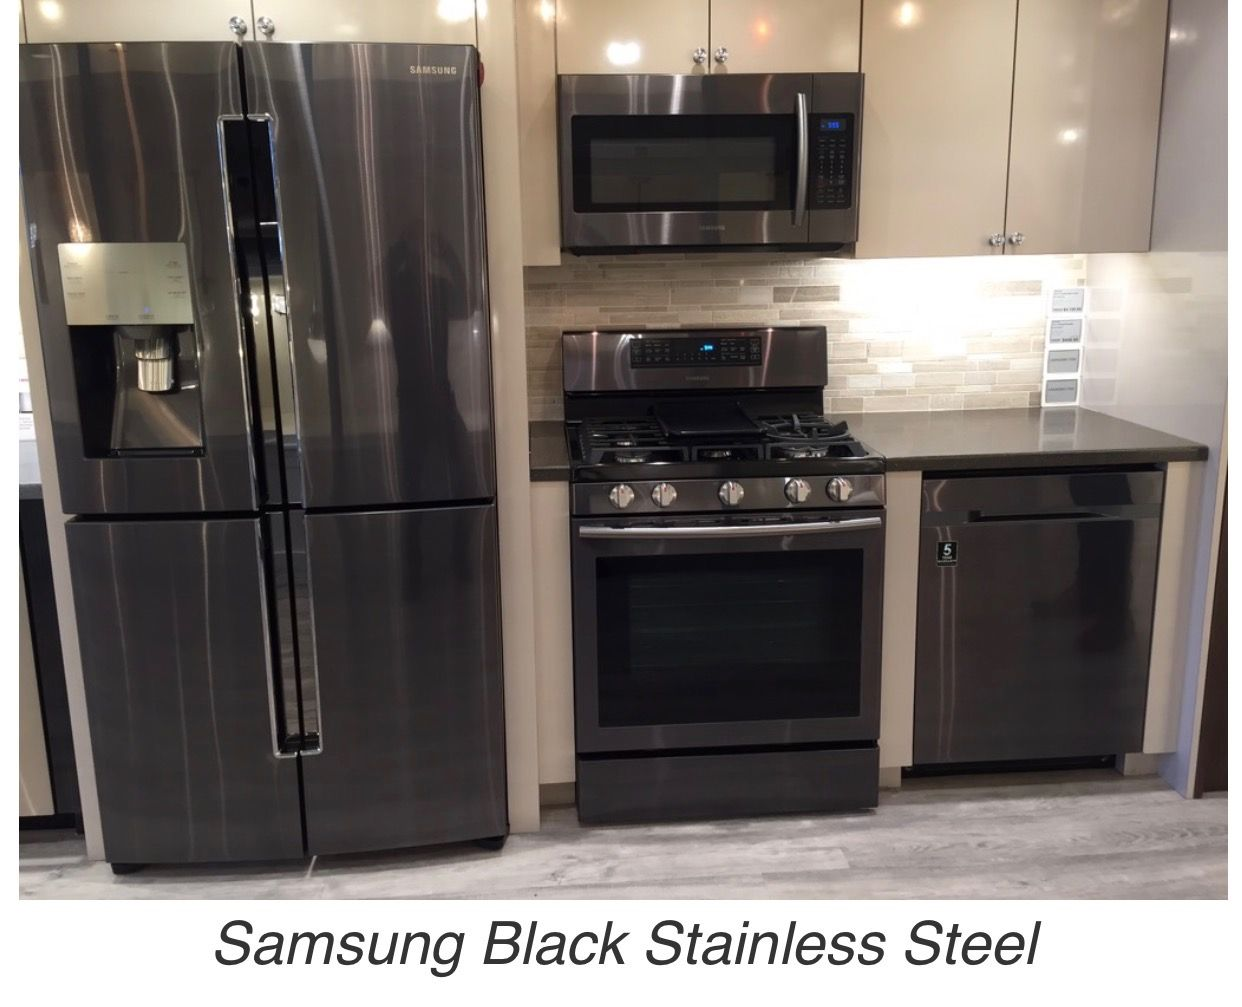 Black Stainless Steel Appliances Google Search Black Stainless Steel Kitchen Samsung Kitchen Samsung Kitchen Appliances